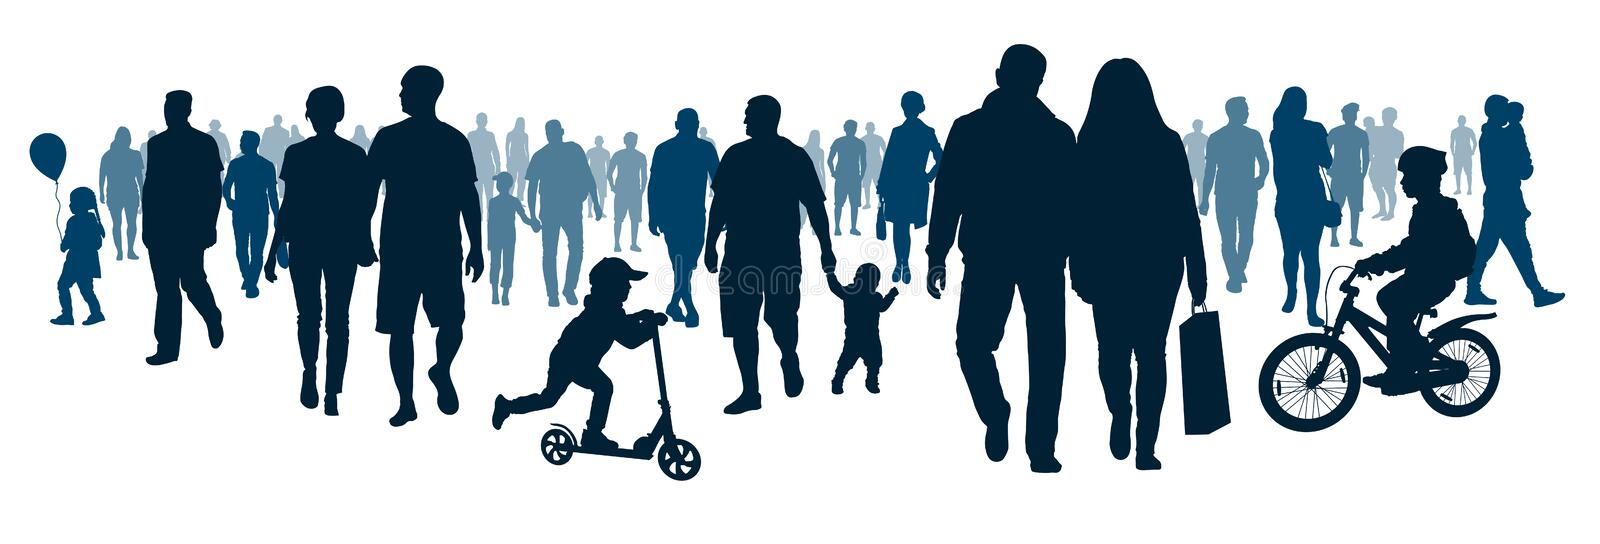 Crowd of people walking people are going. Mob go, meeting event. Moving big group people, silhouette vector stock illustration